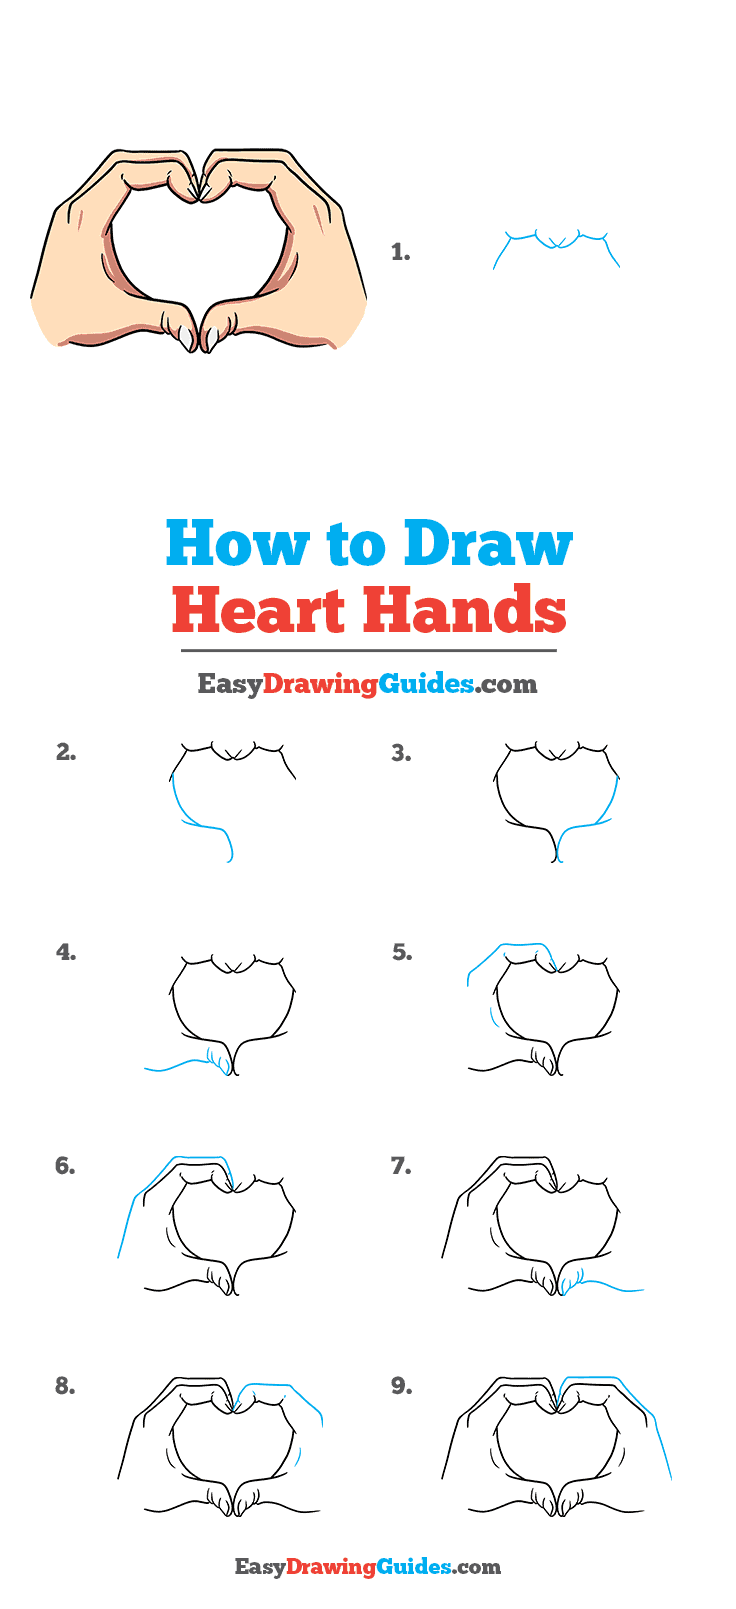 How to Draw Heart Hands Step by Step Tutorial Image